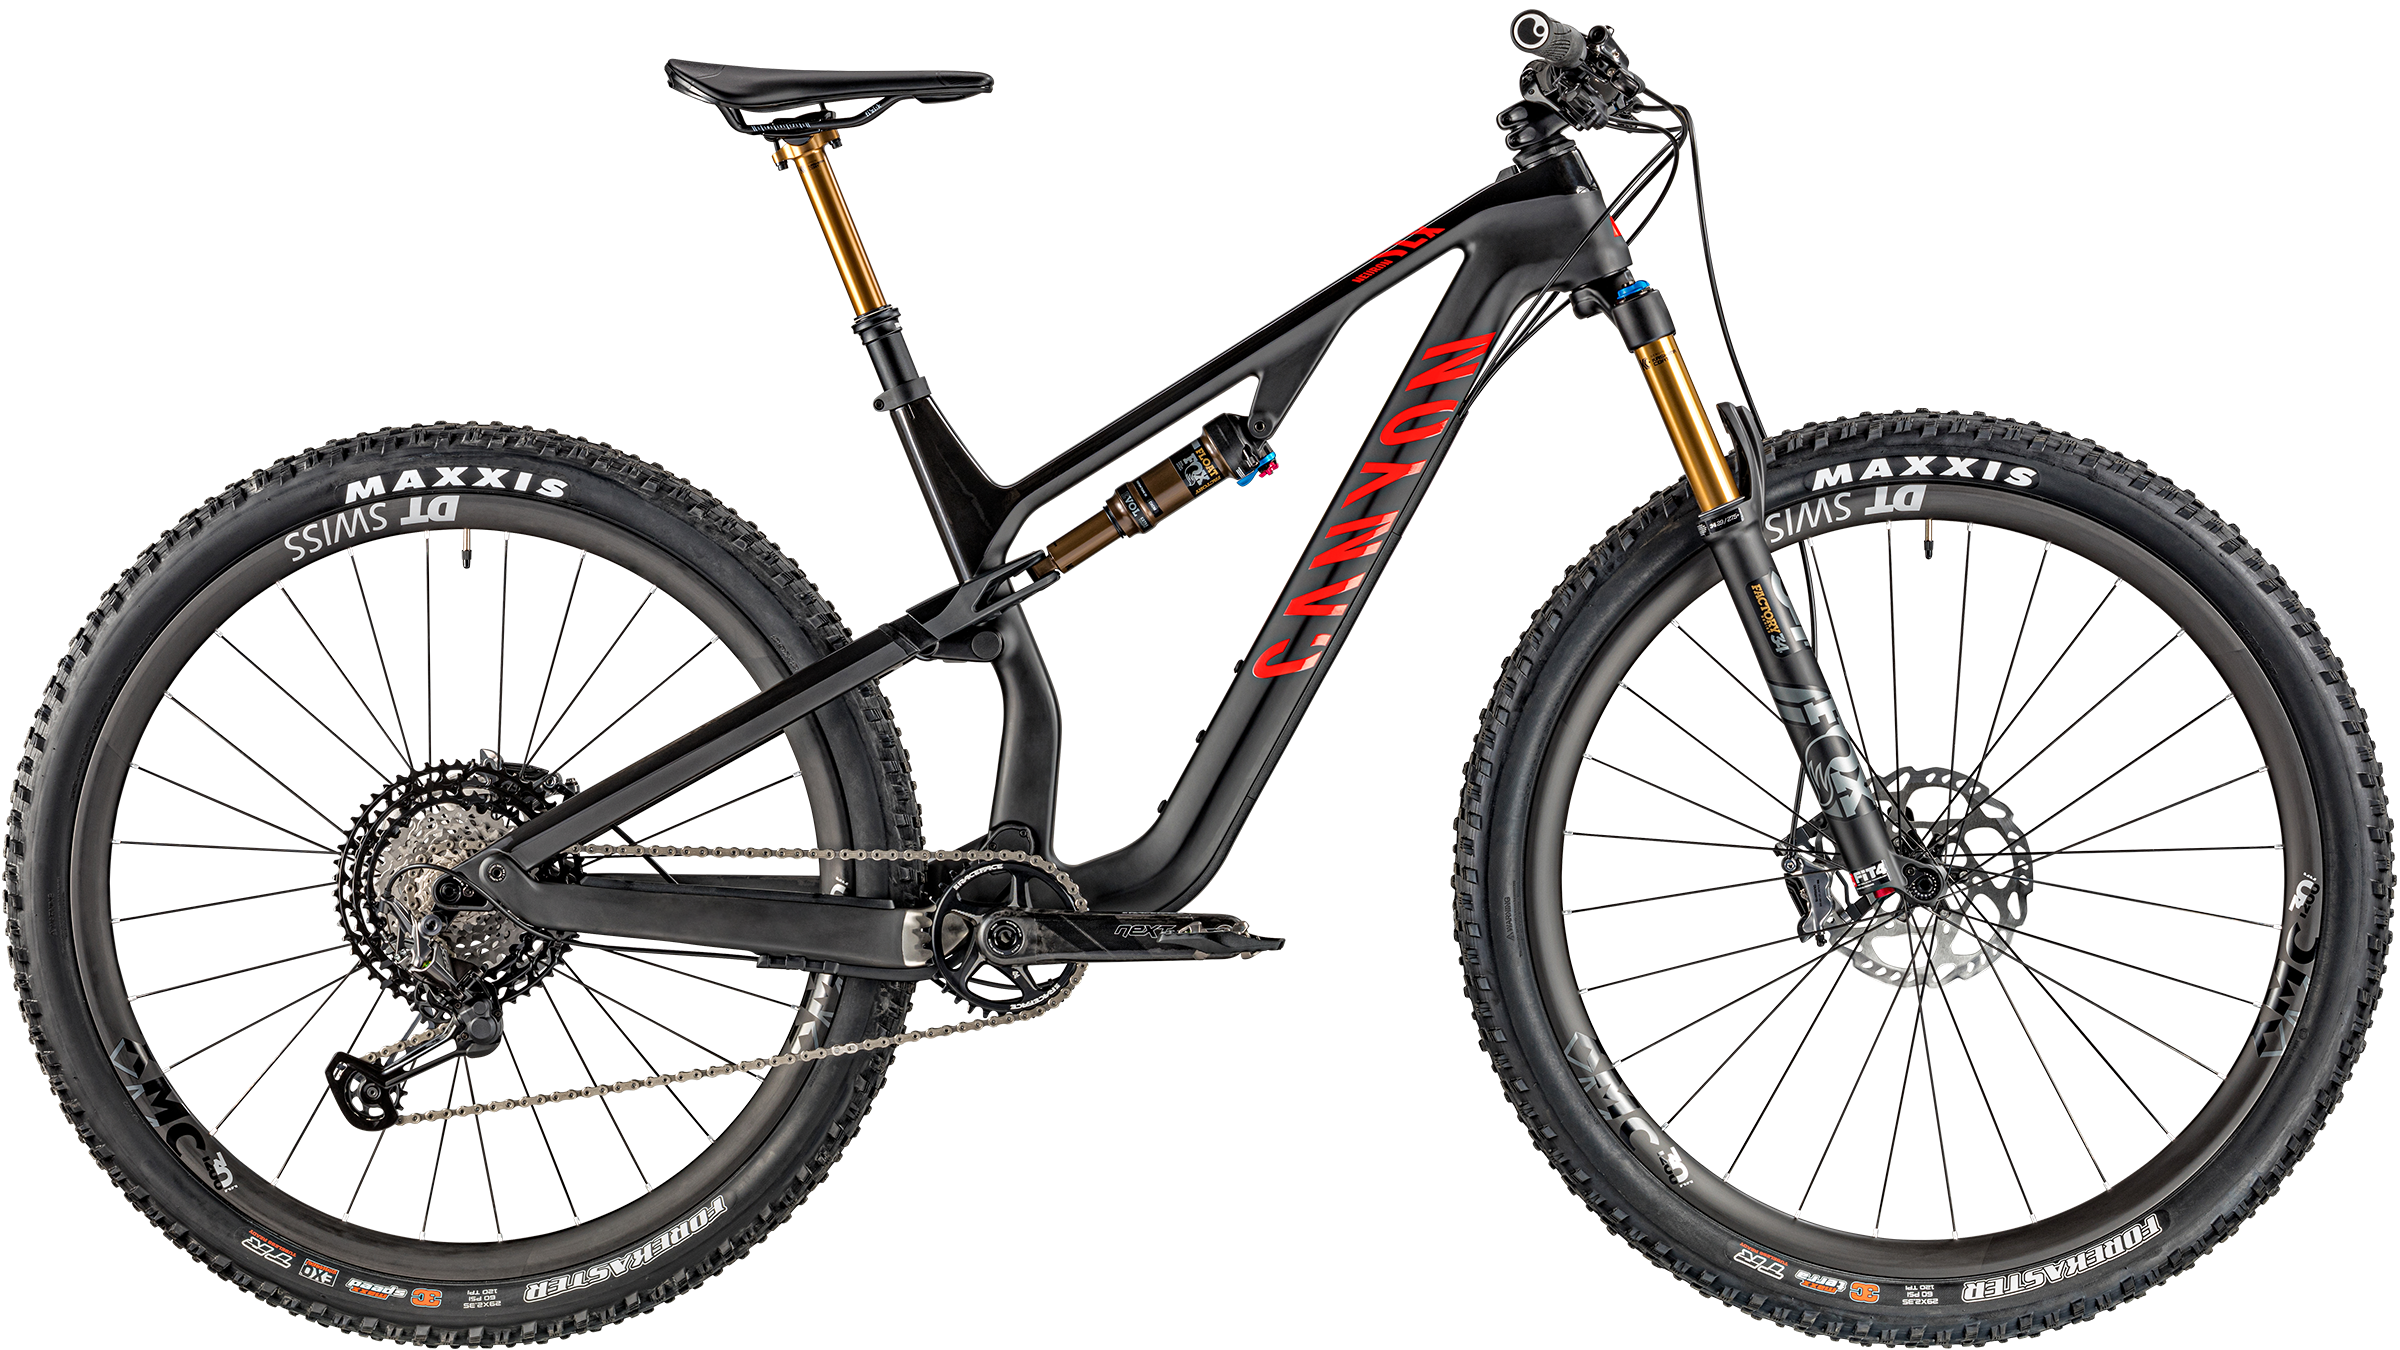 Reveal! Scott Mountain Bike Bicycle Riding Experience Can Improve